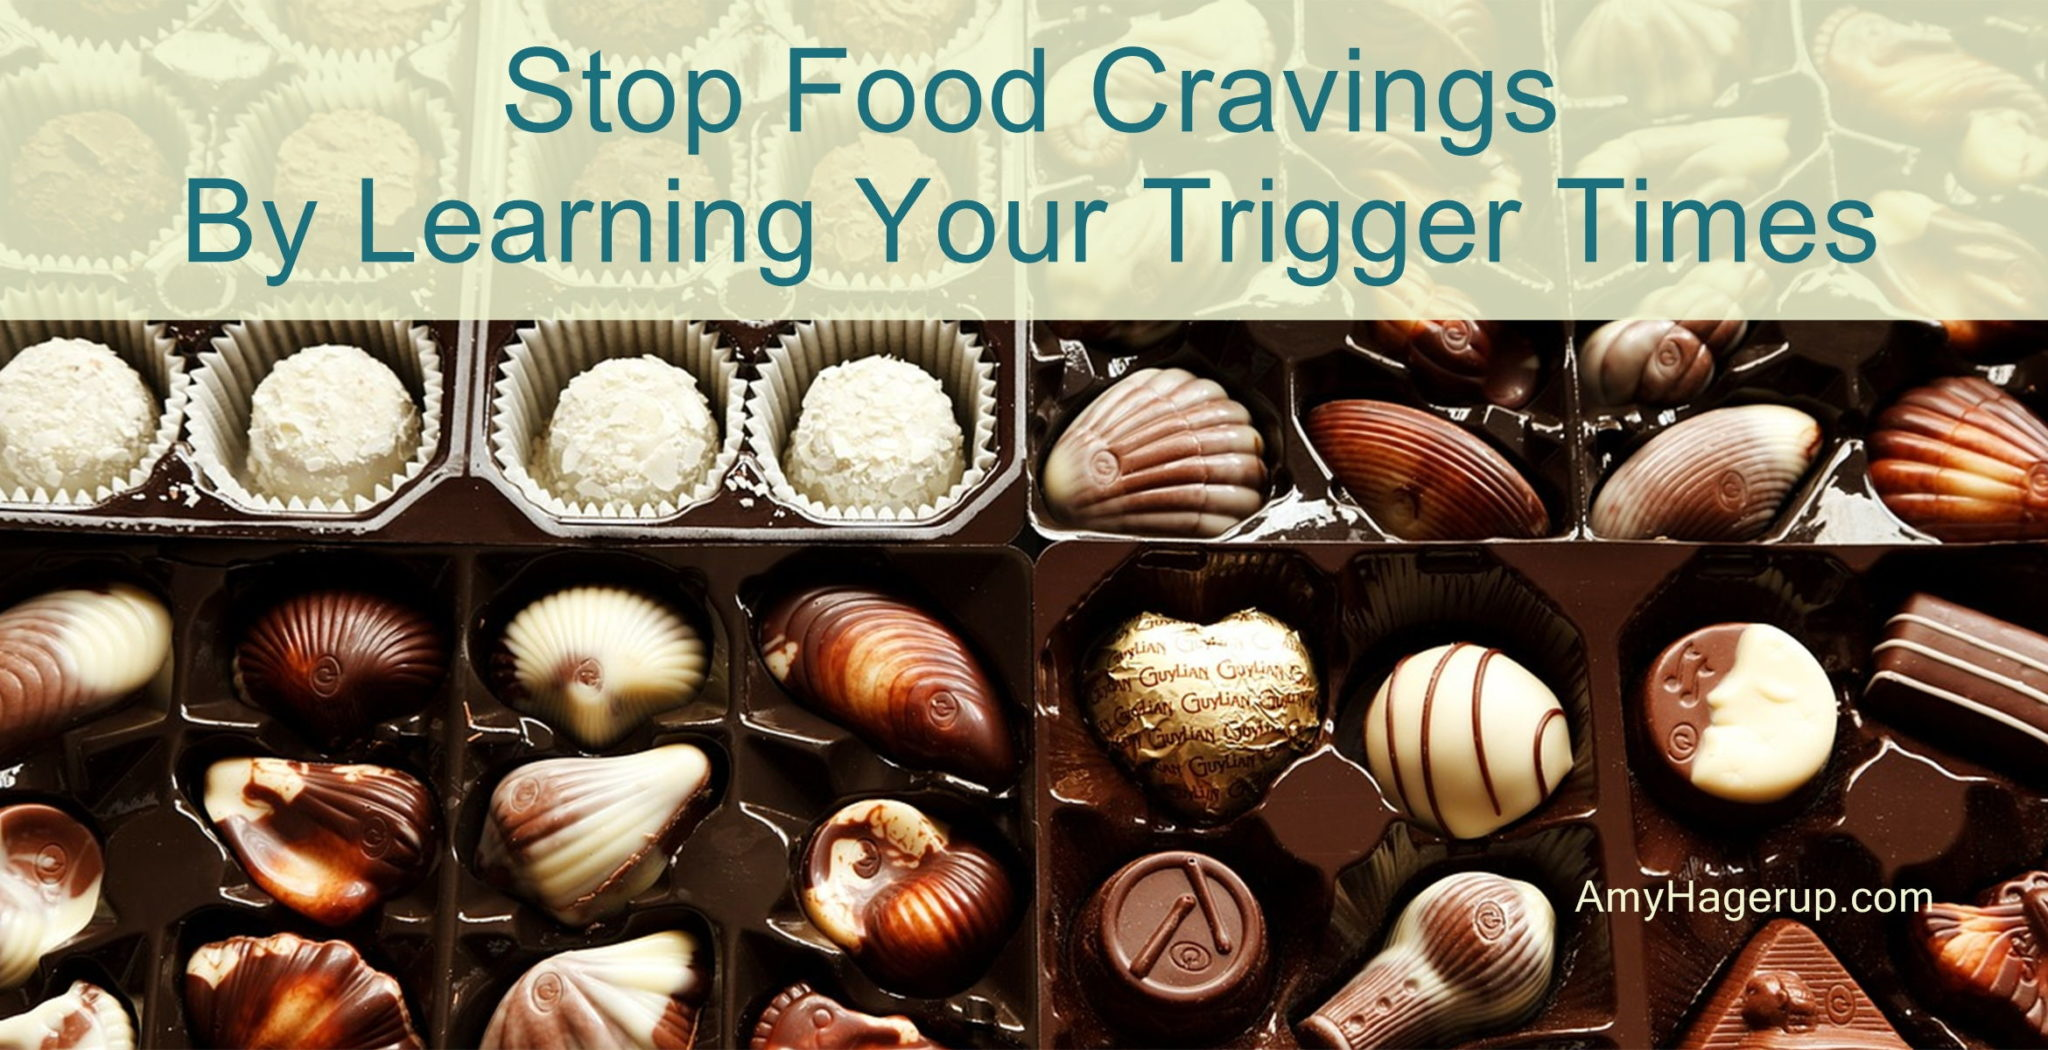 Learn how to stop your food cravings by learning your trigger times.